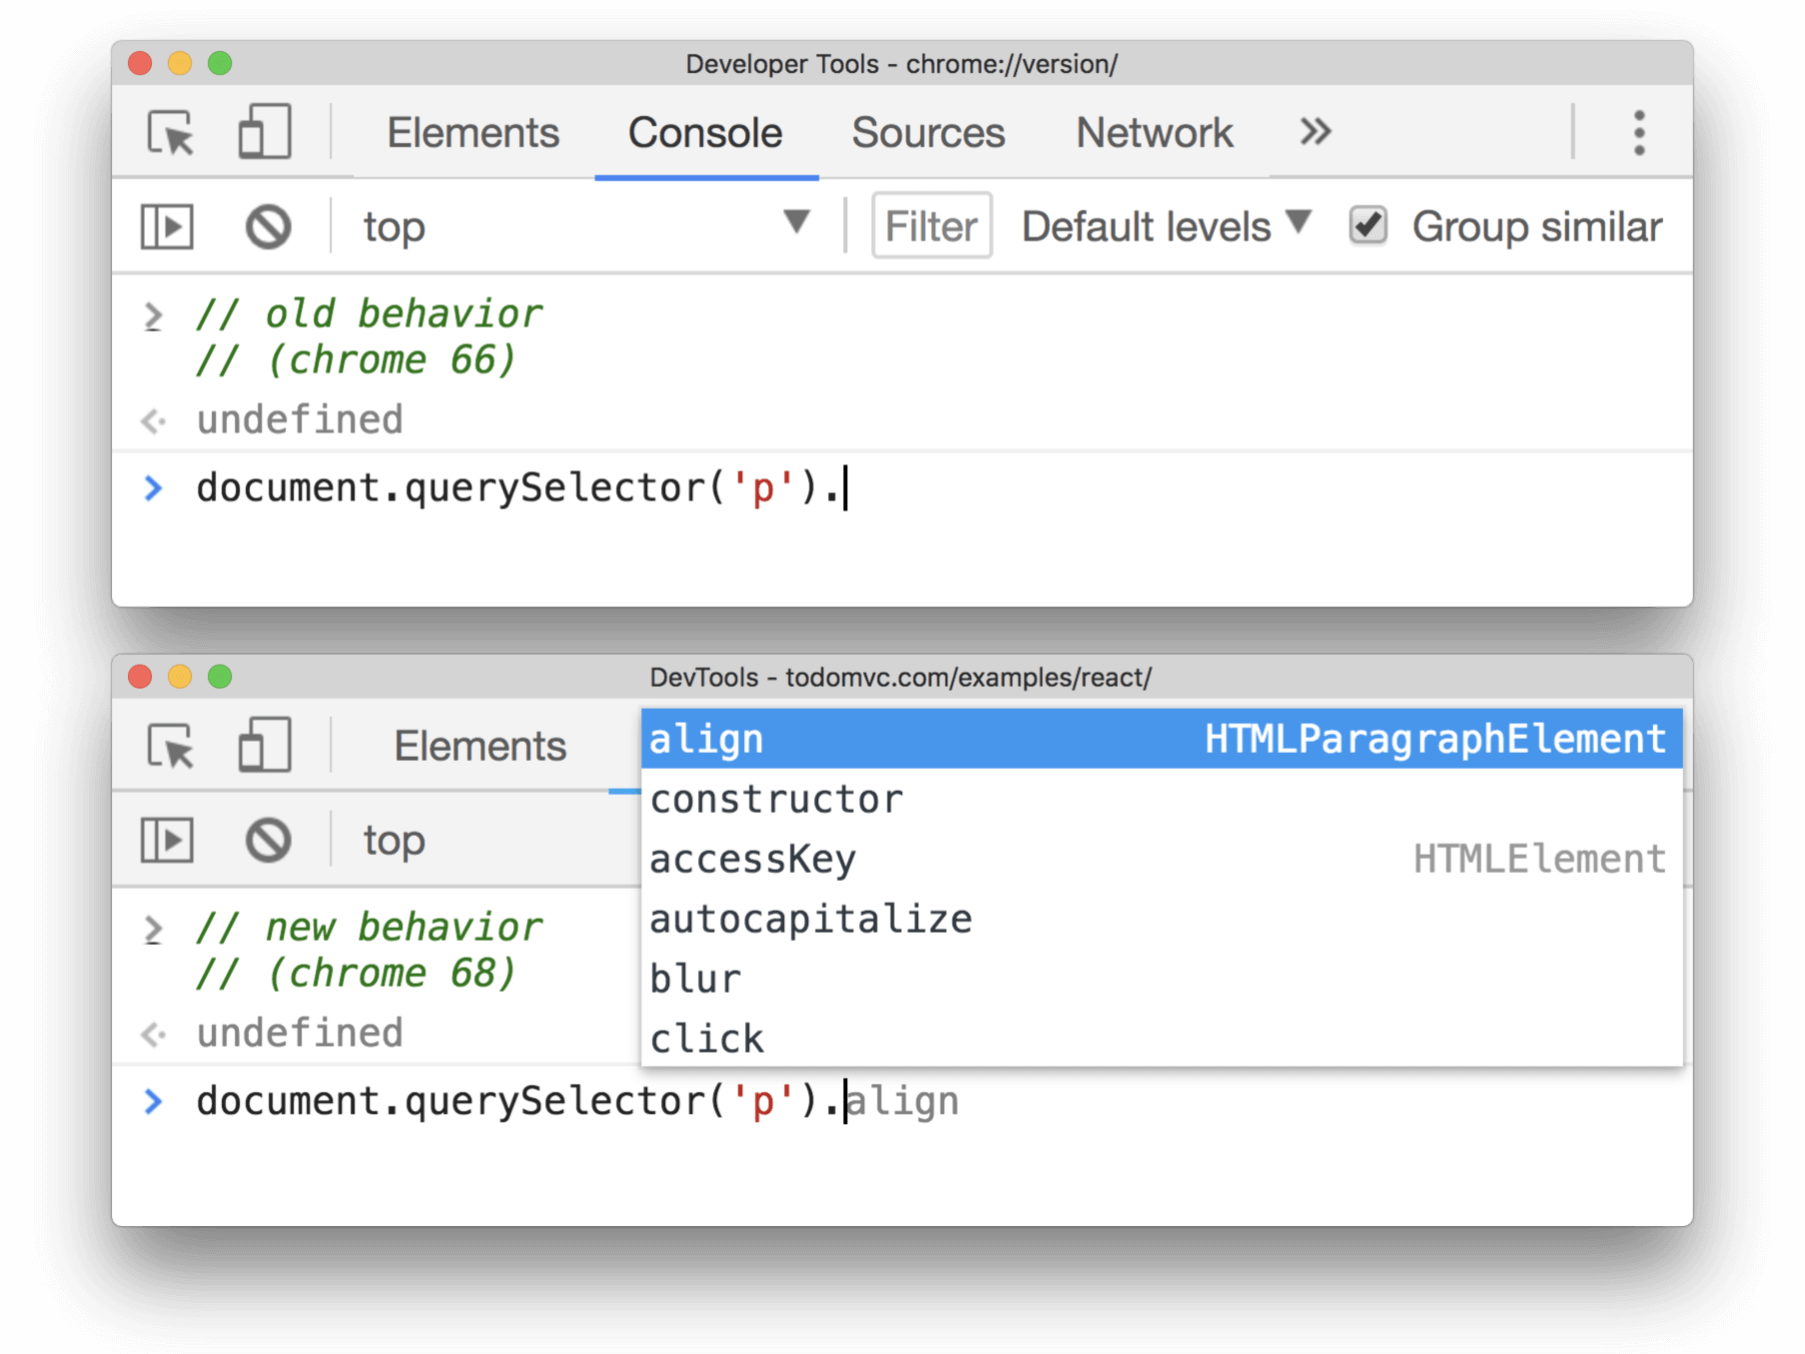 After running document.querySelector('p'), the Console can now show you the available properties and functions for that element.